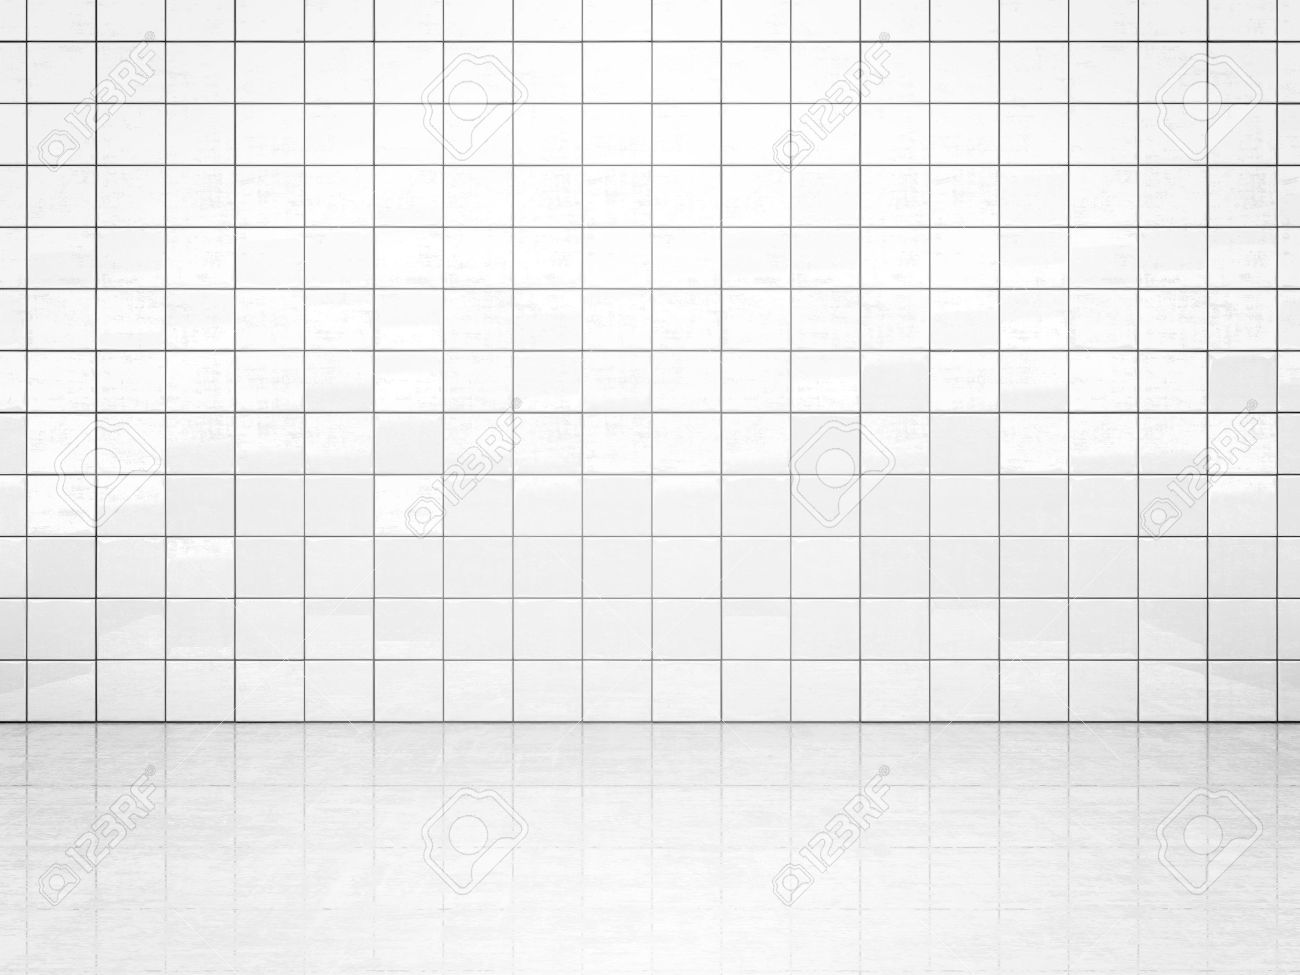 White ceramic tile wall and concrete floor bath or toilet room illustration white ceramic tile wall and concrete floor bath or toilet room background 3d illustration dailygadgetfo Choice Image